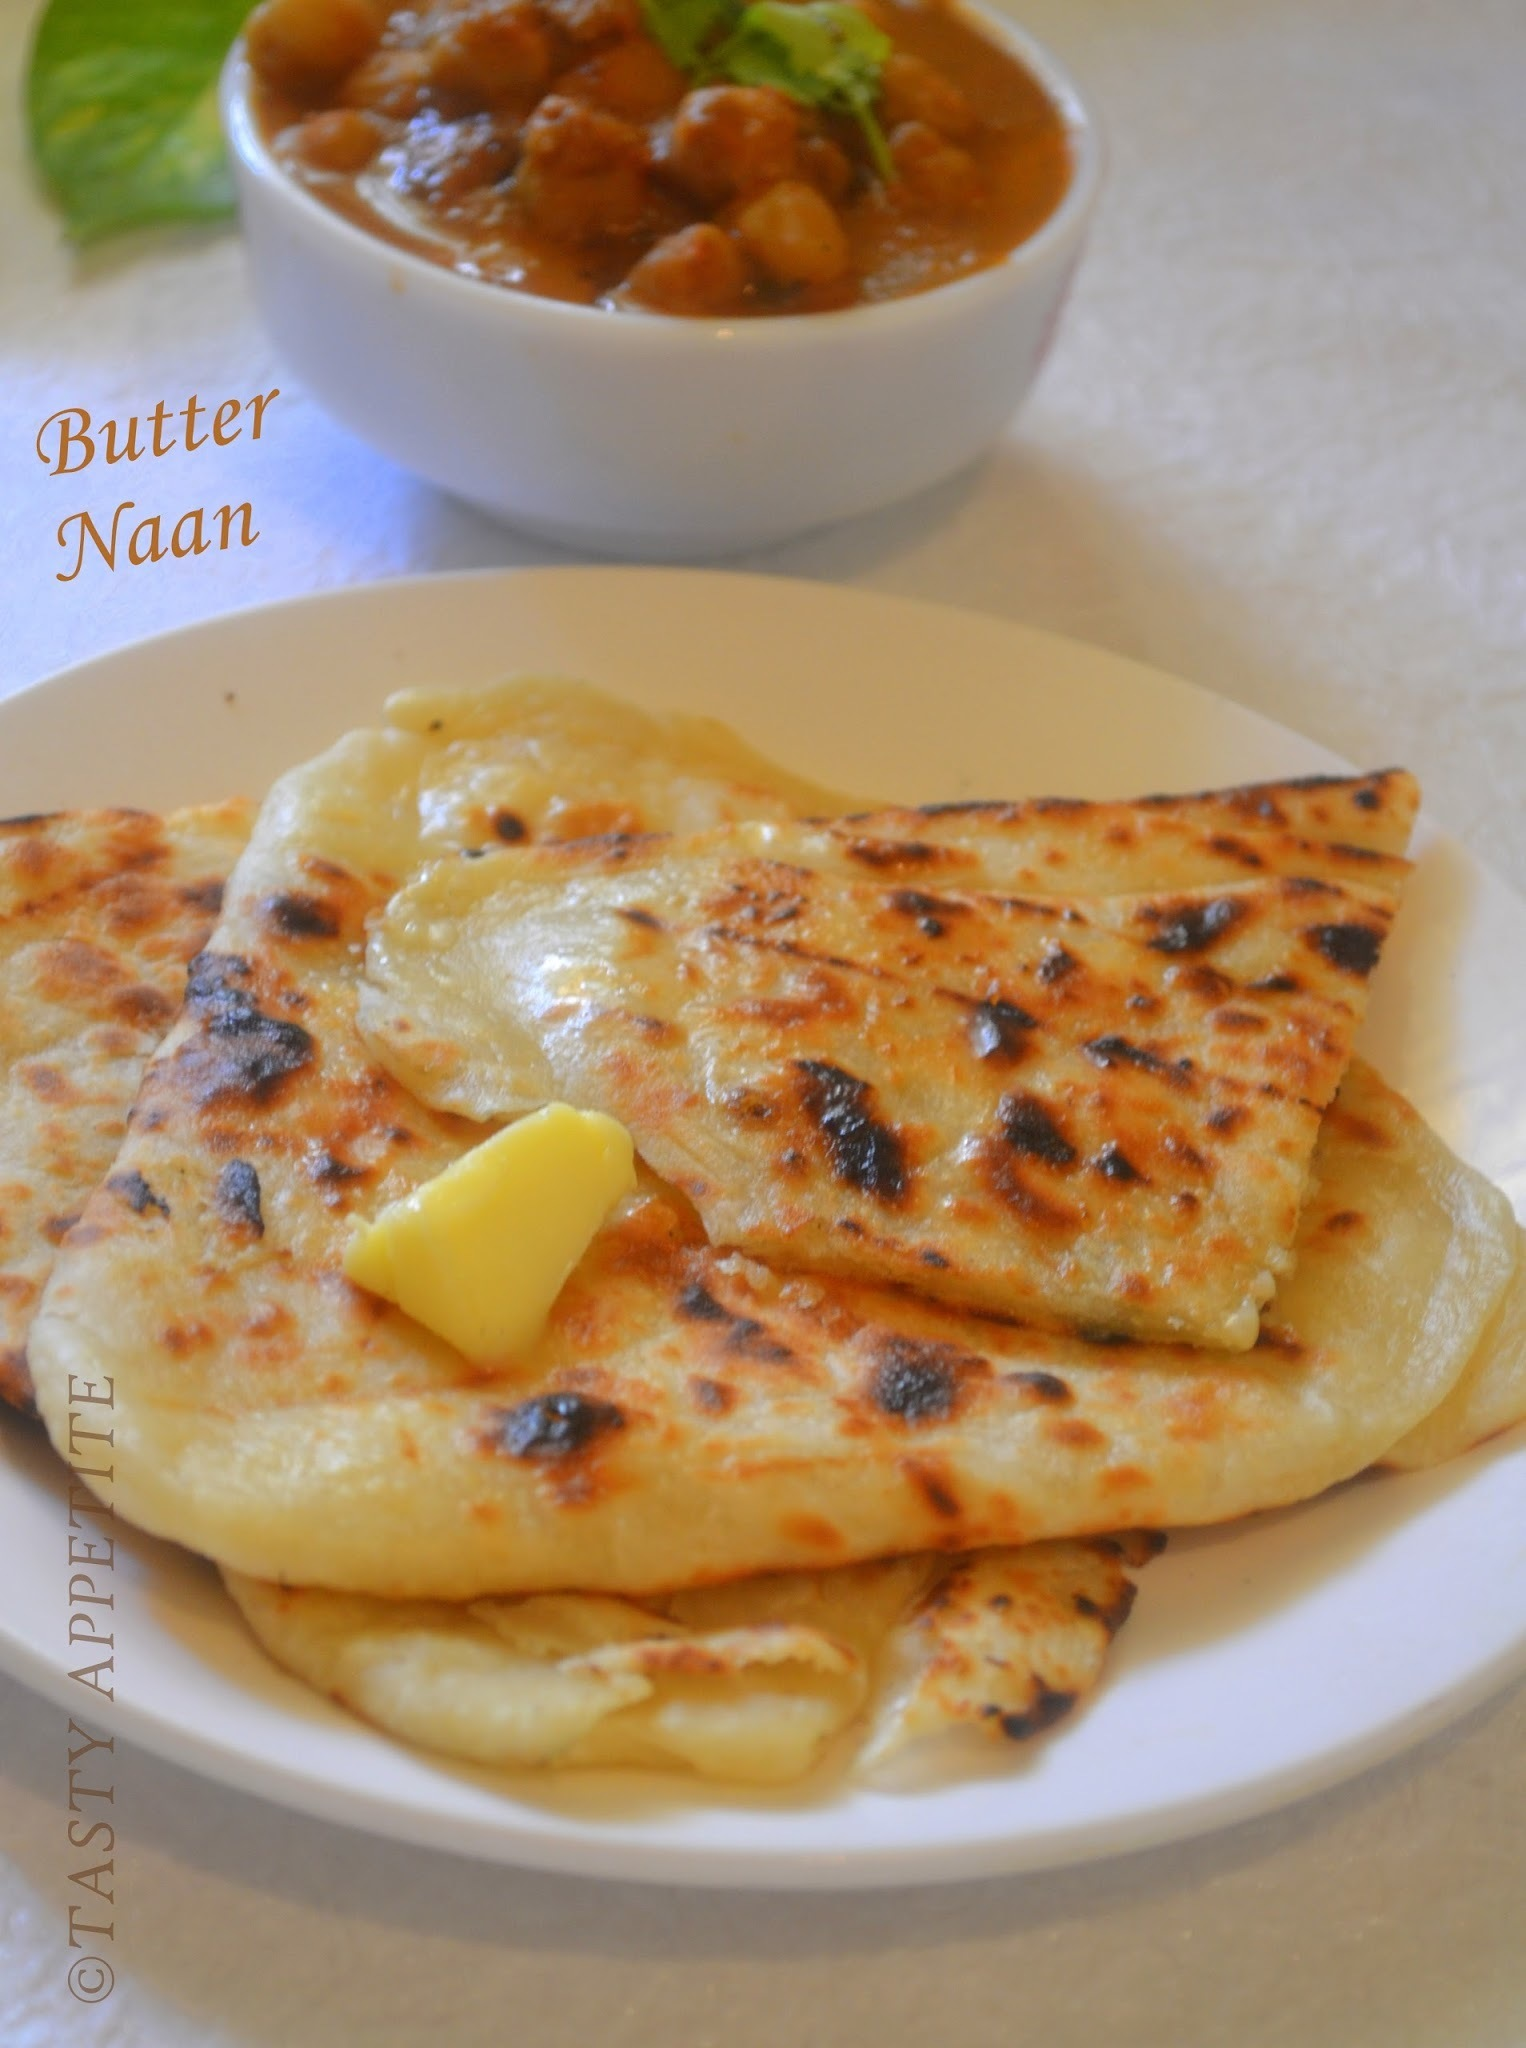 How to make Naan / Butter Naan at home: